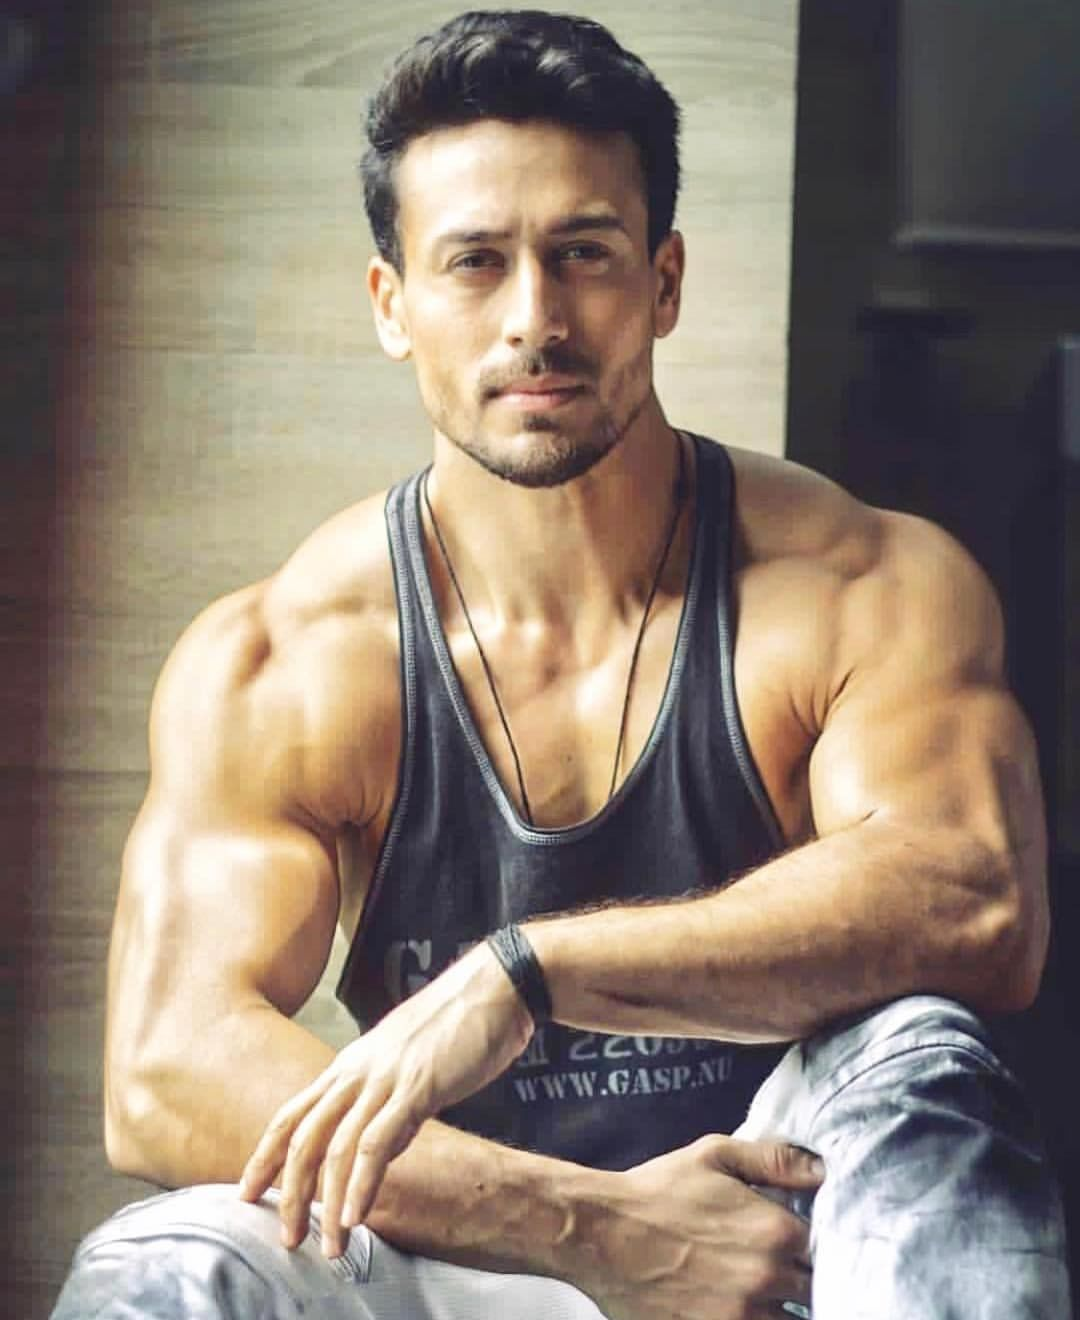 Excited For Baaghi 3 Yes No Tiger Shroff Body Tiger Shroff Fitness Instagram Accounts